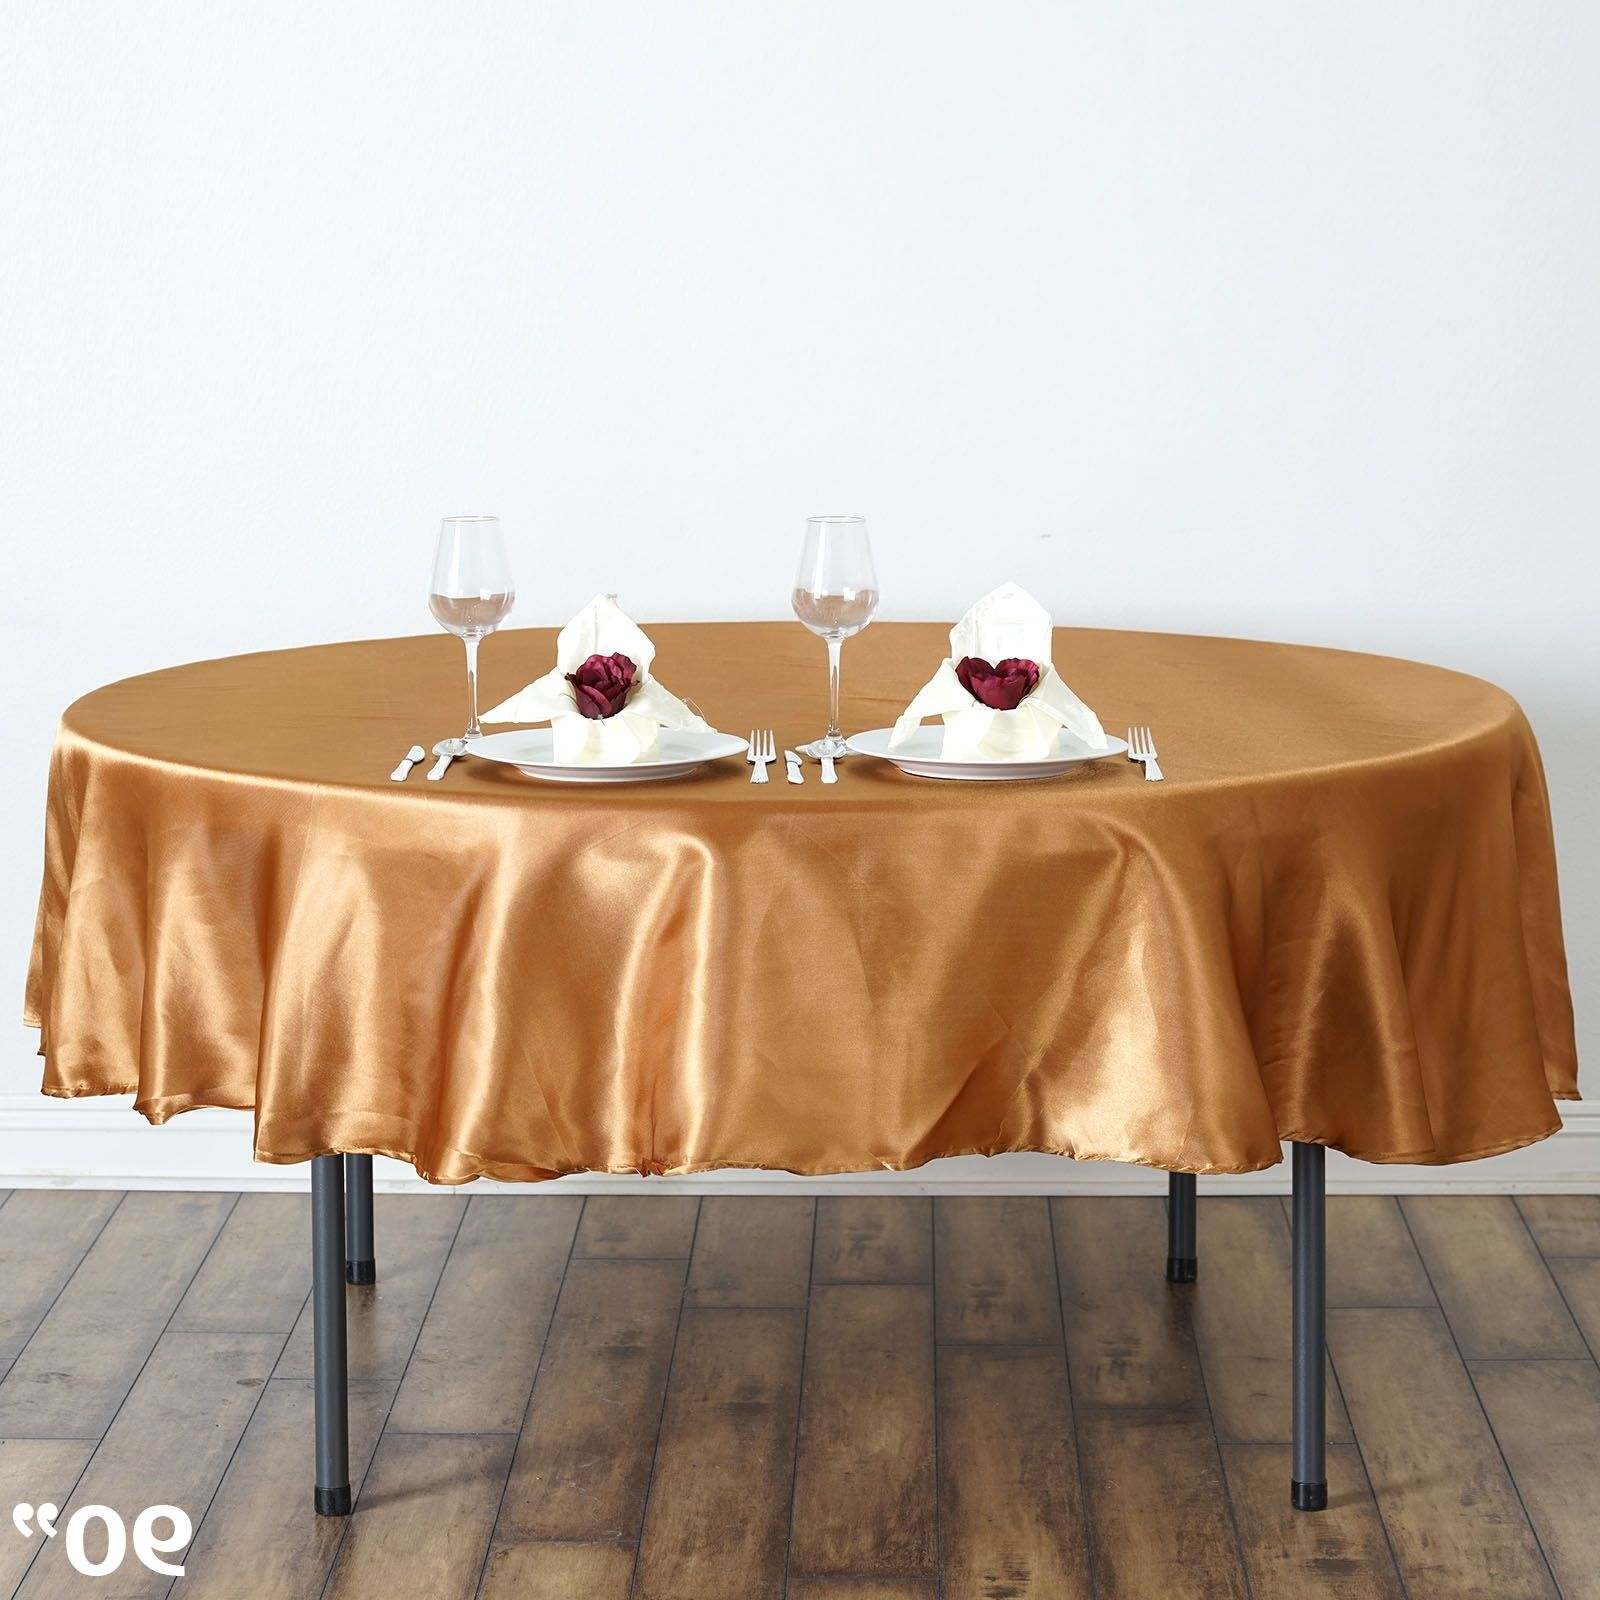 90 Inch Round Plastic Tablecloths Tablecloth Pinterest Plastic